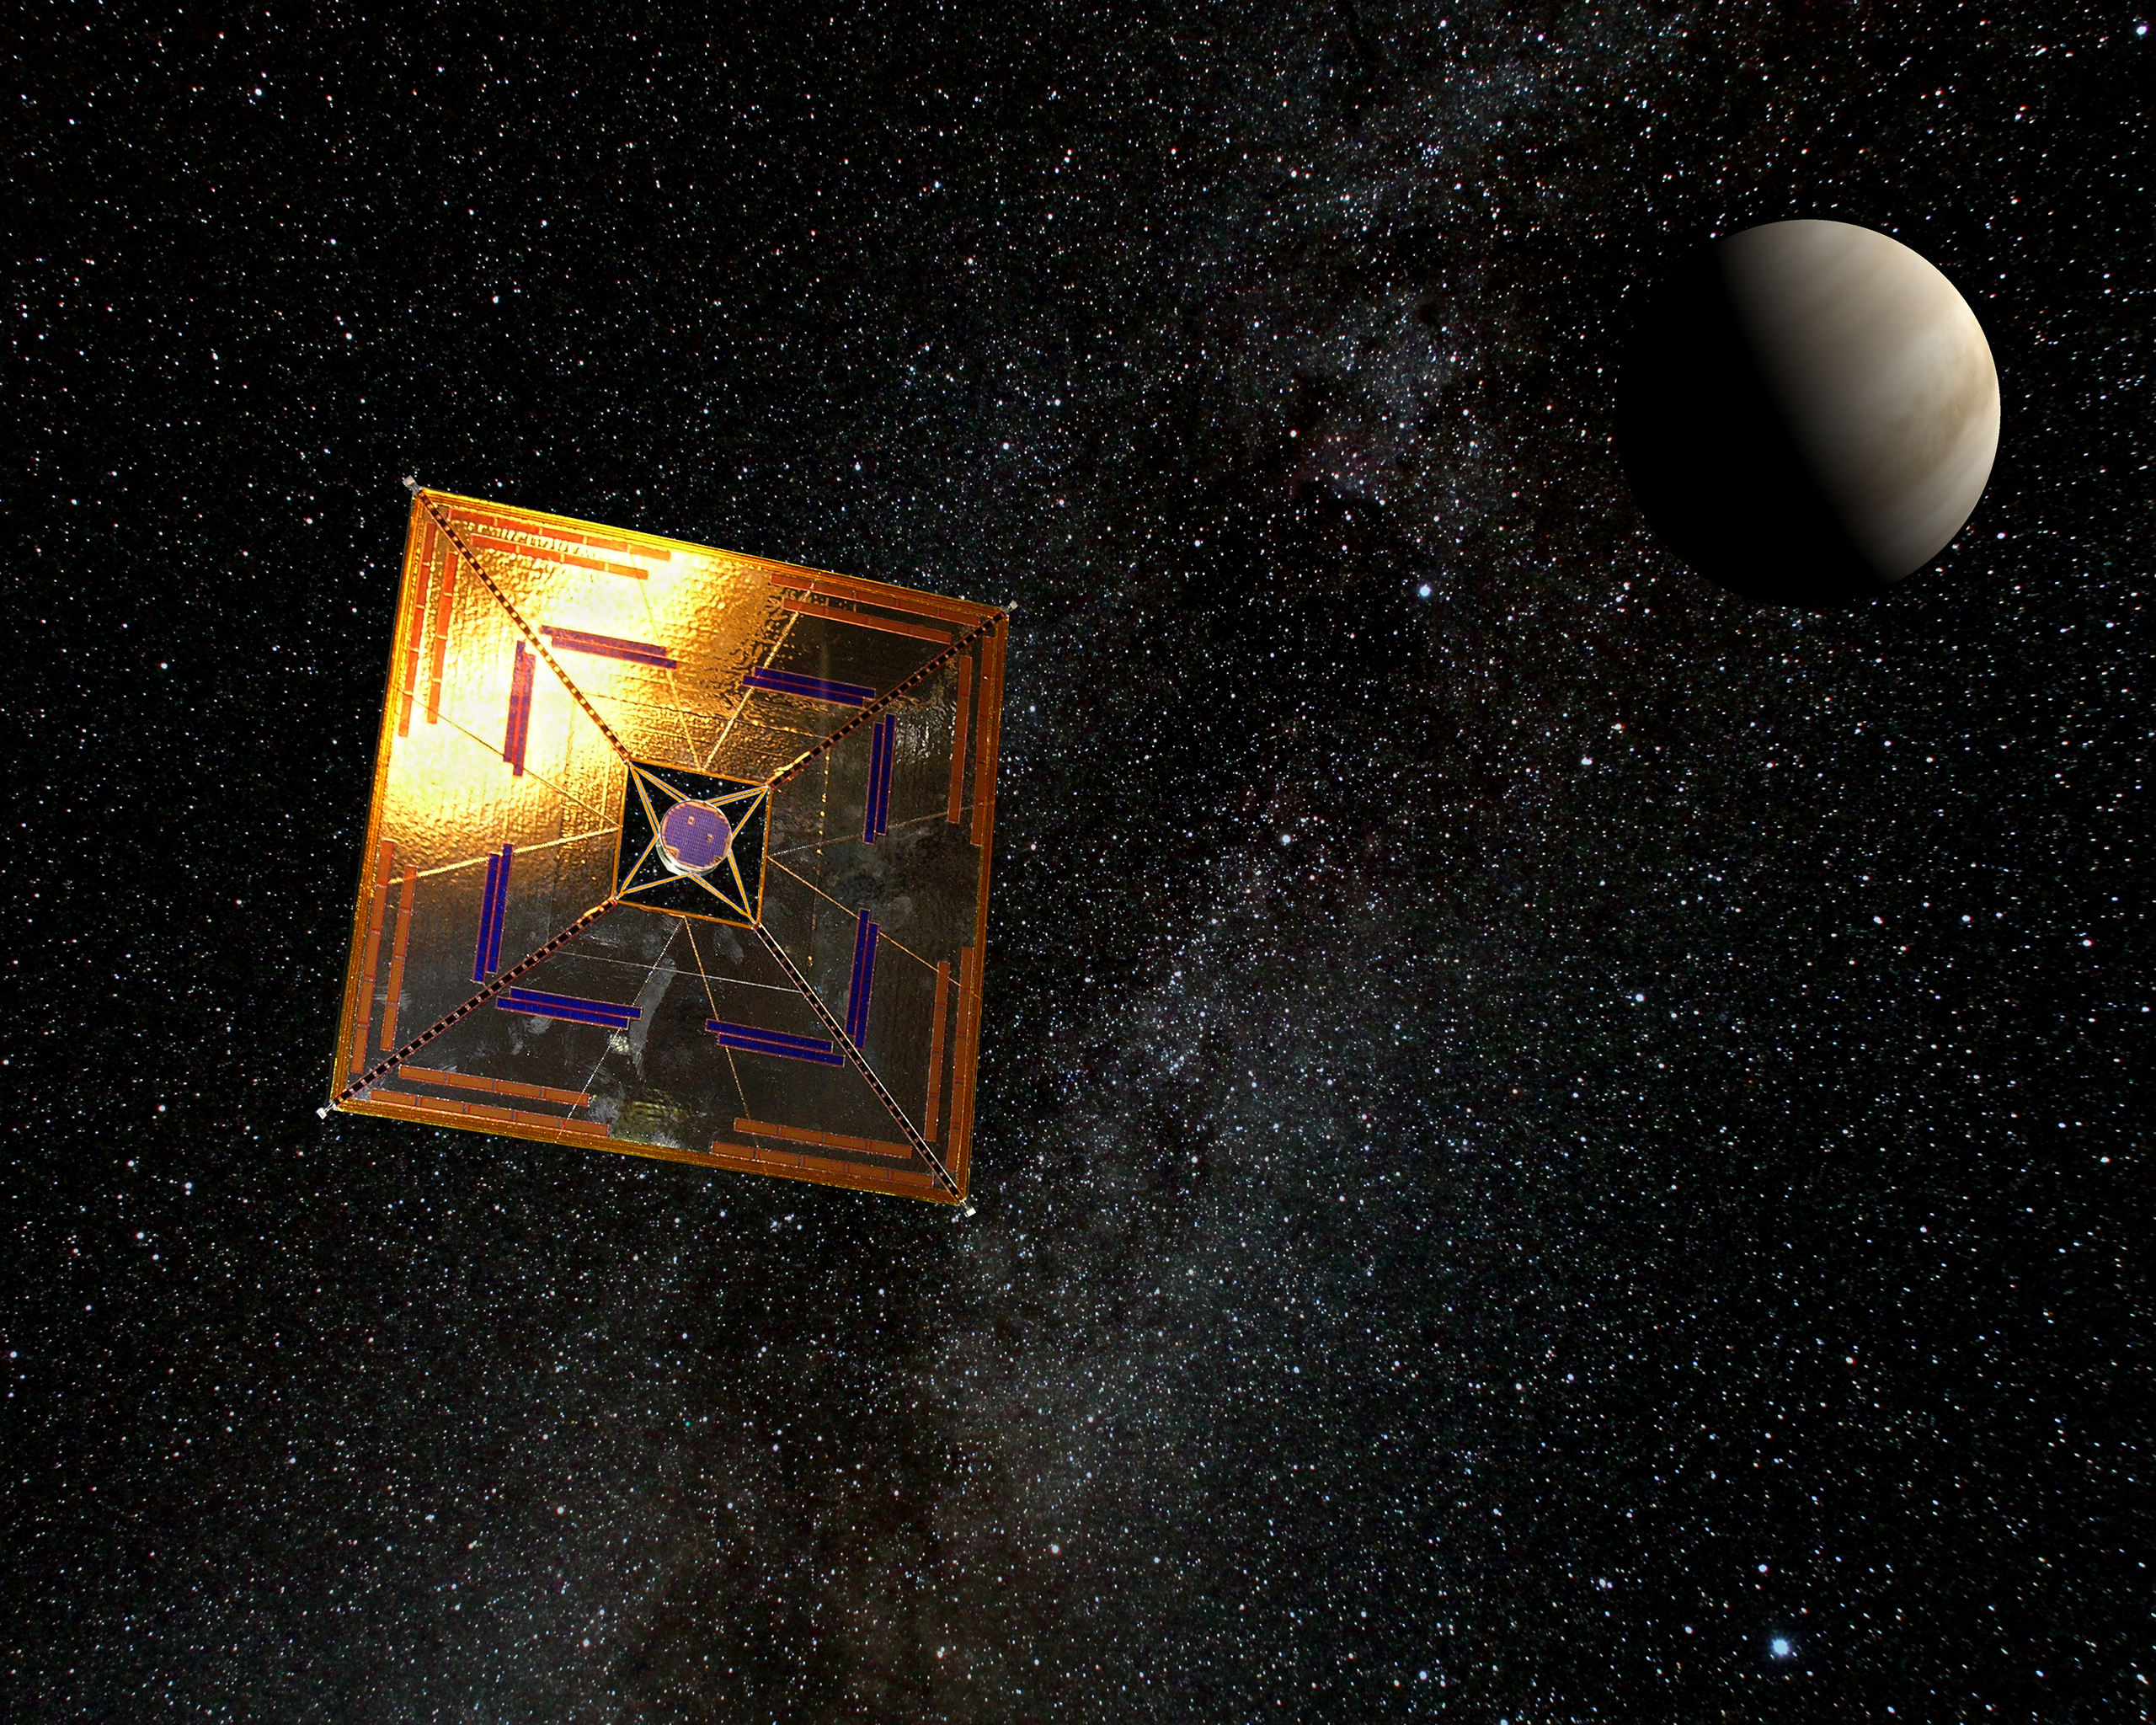 An artist's depiction of a space probe complete with a square, gold-foil solar sail, in front of a distant planet. NASA is planning one such exoplanet expedition to mark the centennial of Apollo 11.